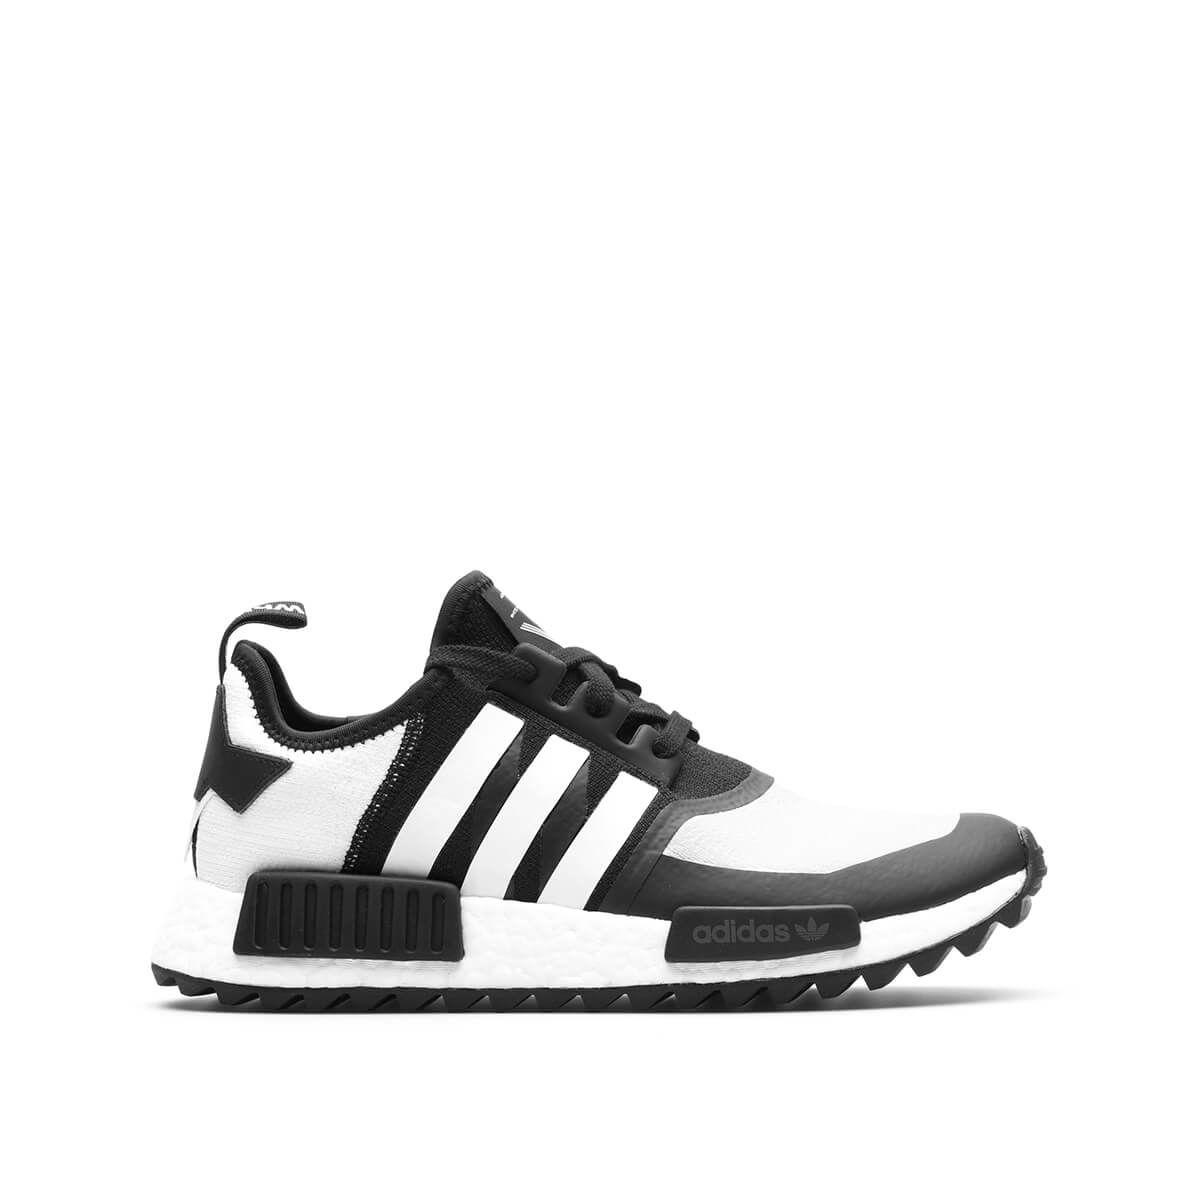 new product 89bbf fb877 Wm Nmd Trail Pk in Multicolor